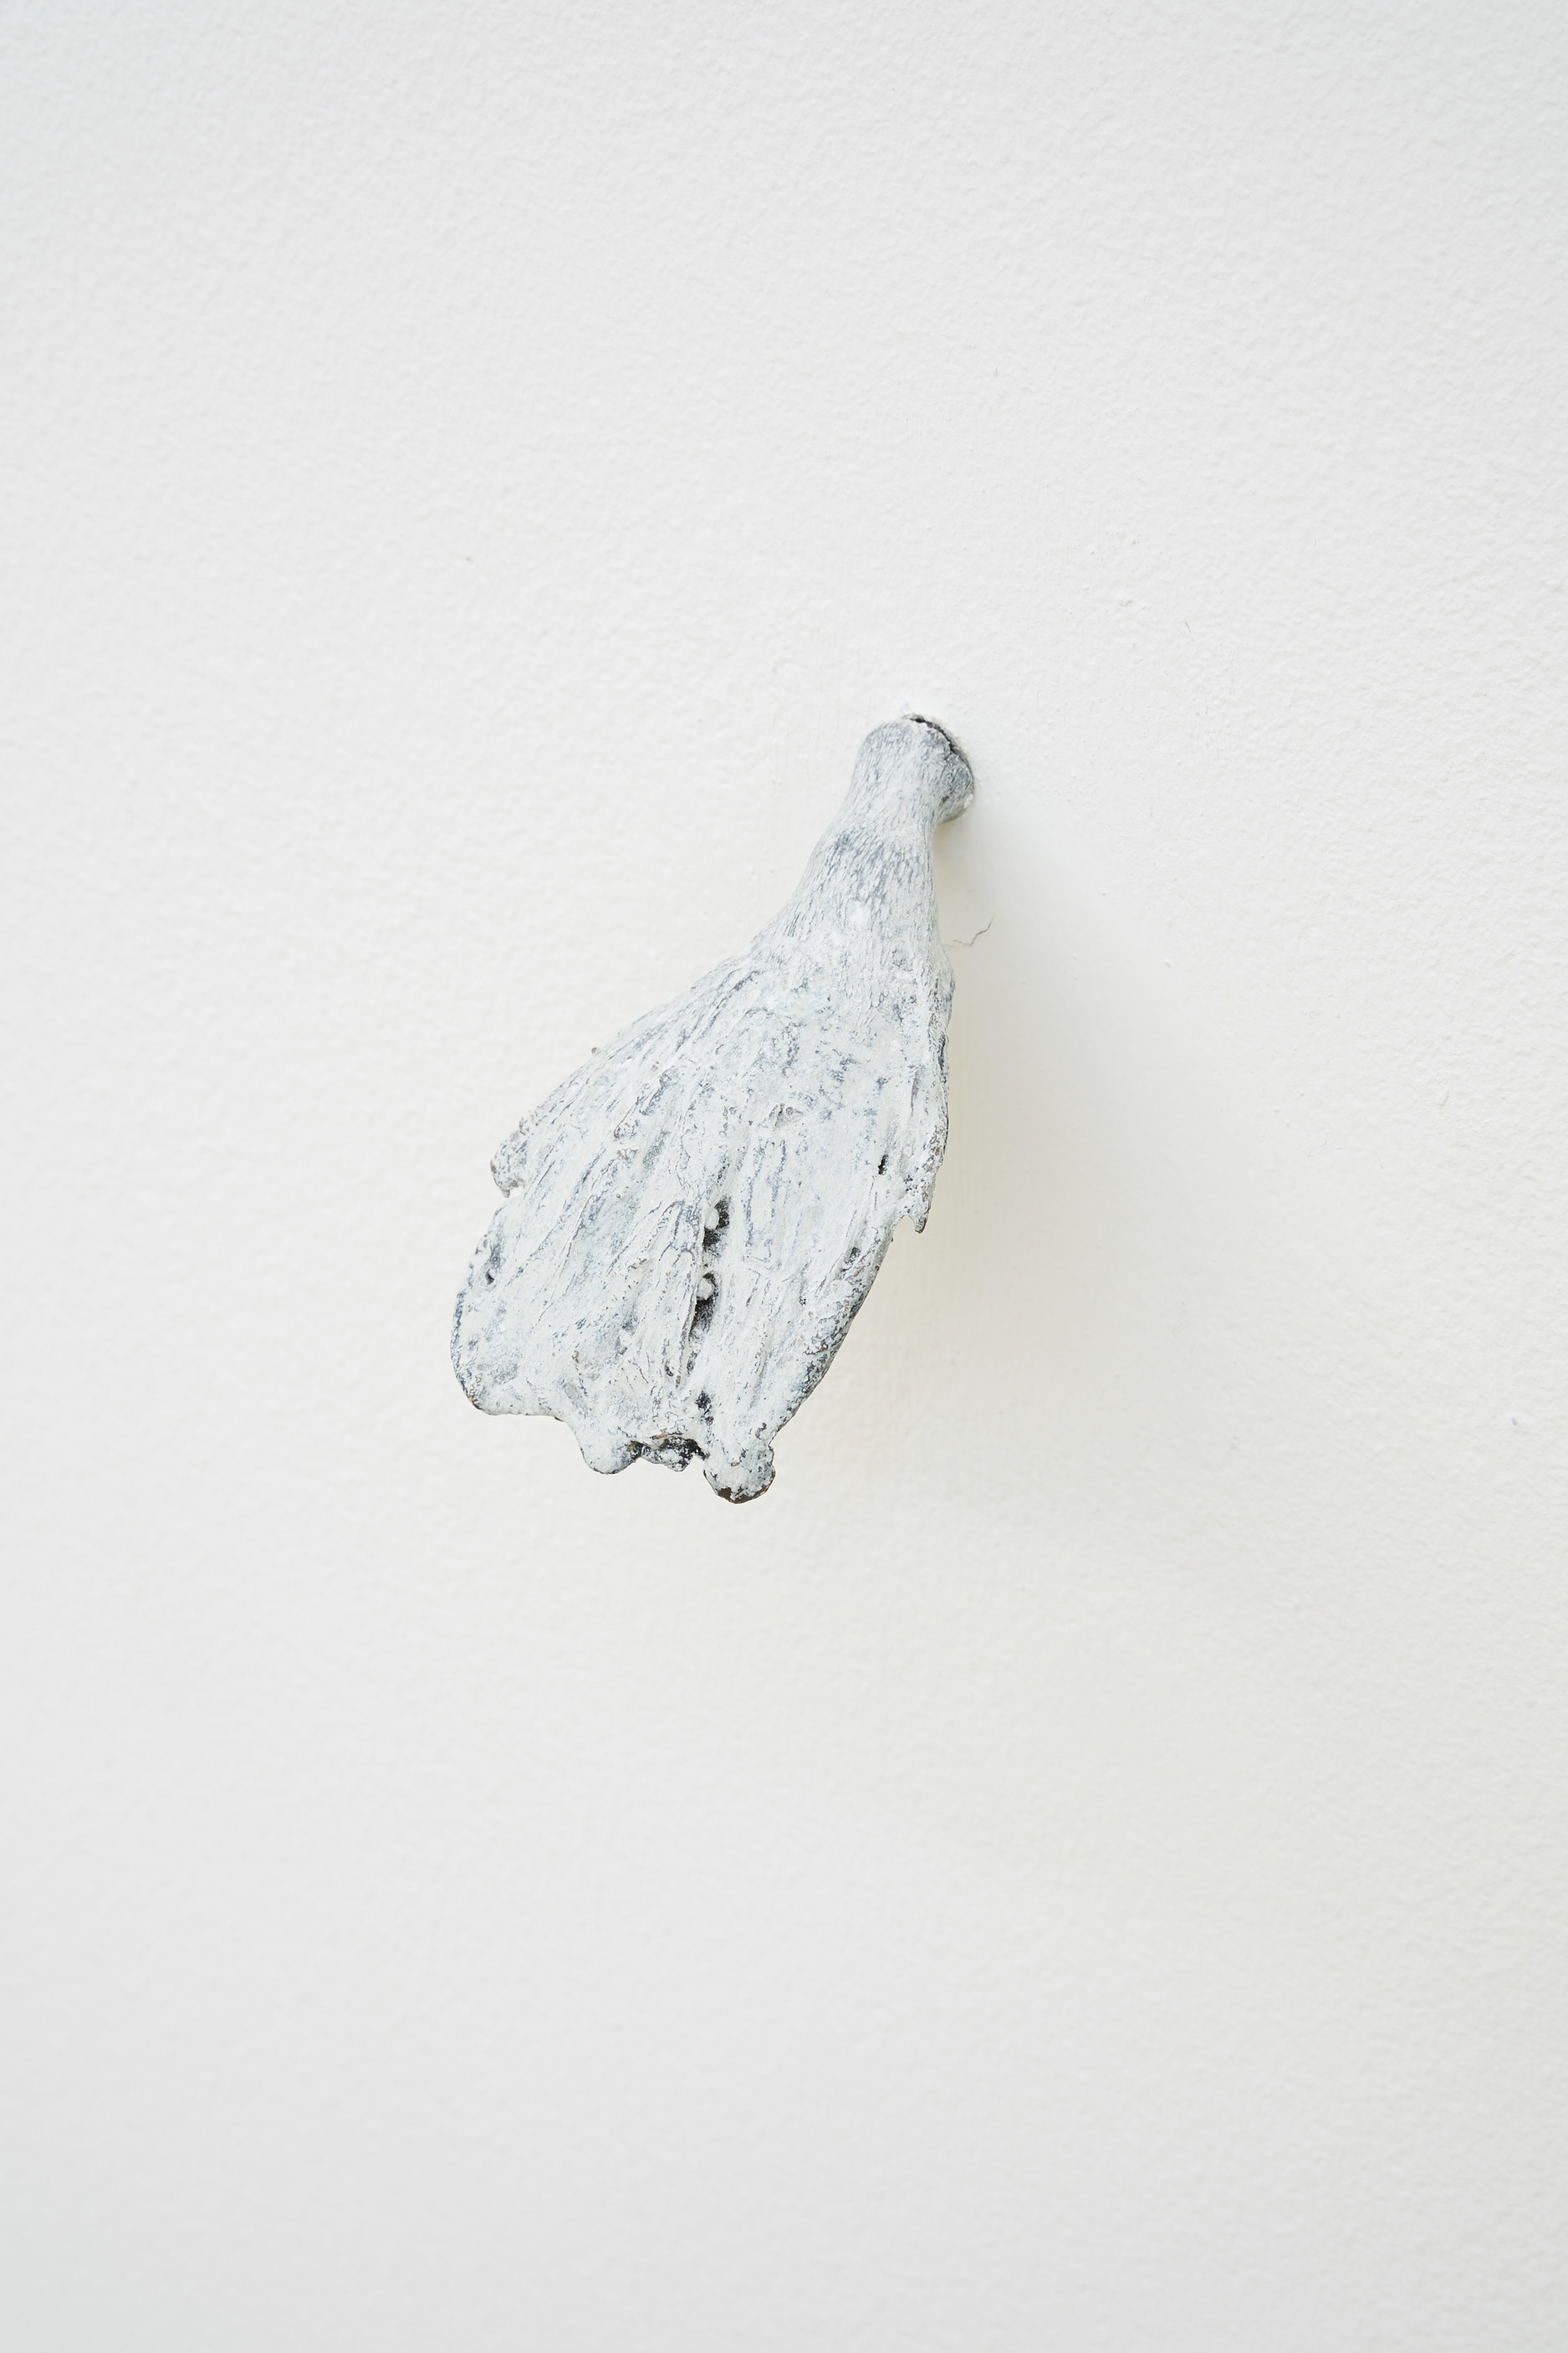 Andrea Zucchini, To those who only eat what has been dried by the sun, 2016. Bronze mushroom.